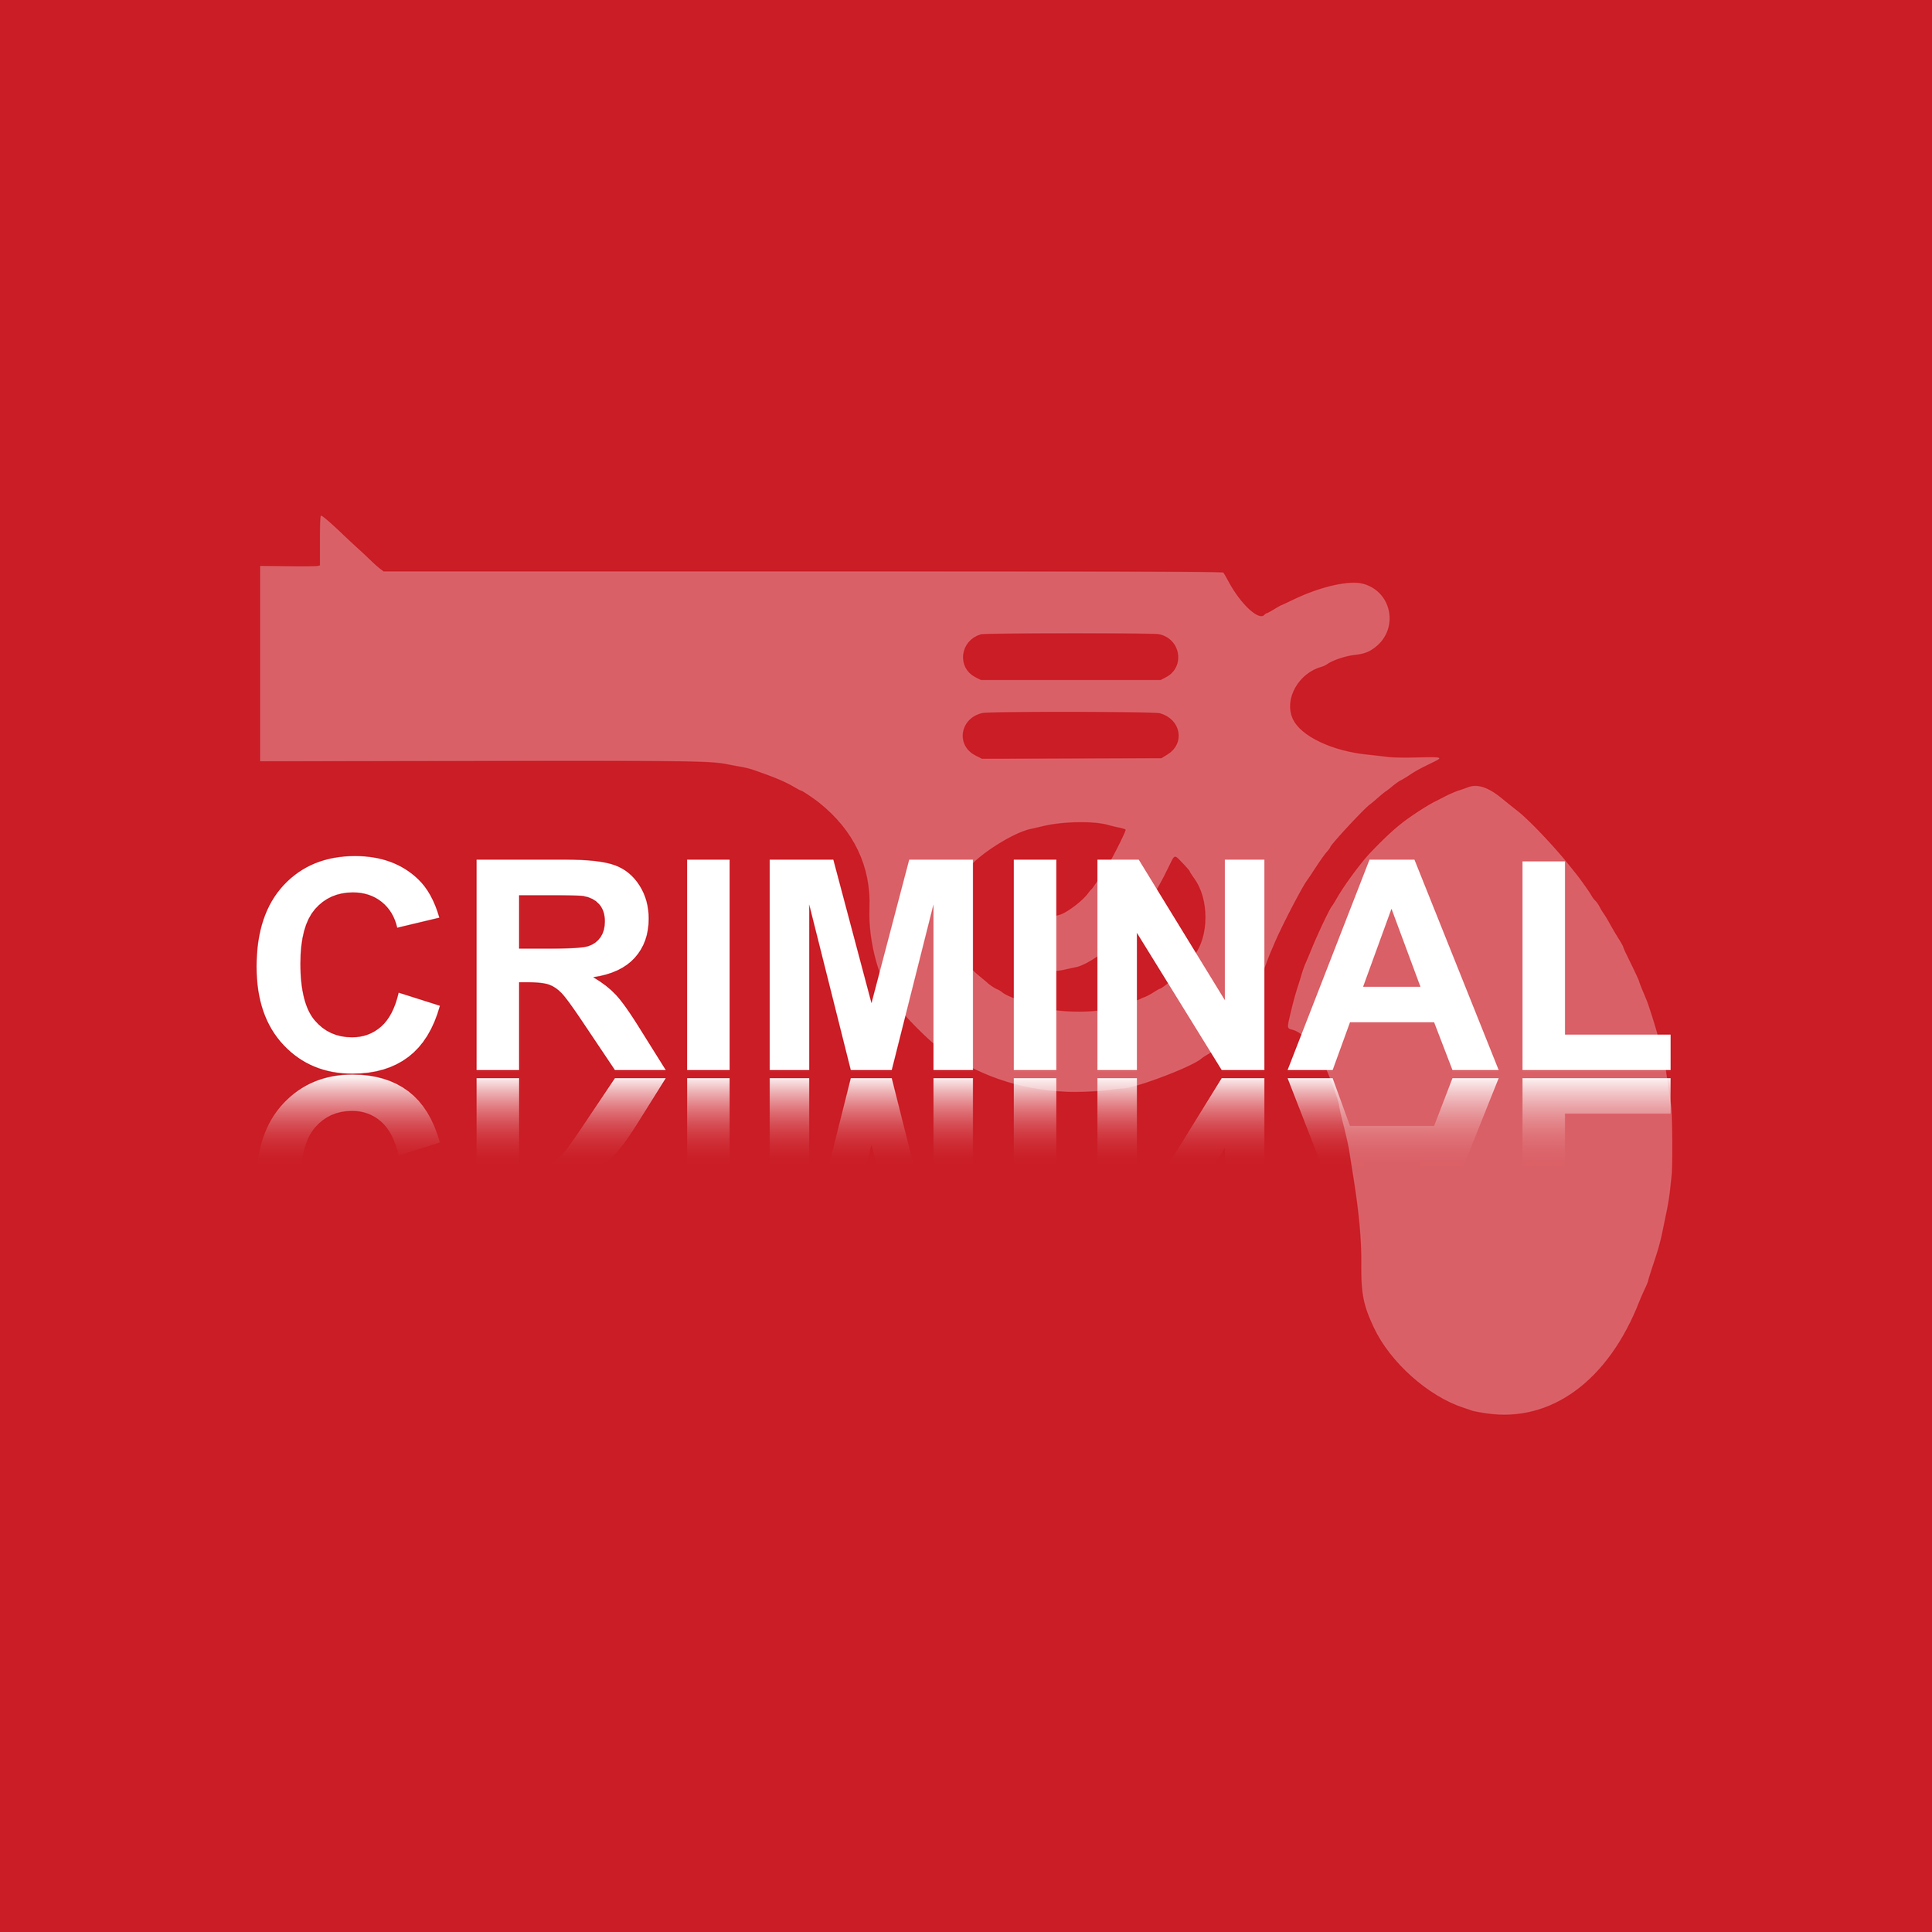 General Principles  Murder  Non-Fatal Offences Against the Person  Manslaughter  Criminal Damage  Drugs  Sexual Offences  Theft,Burglary, Robbery & Blackmail  Fraud &Making Off Without Payment  Joint Enterprise, Principals and Accomplices  Inchoate Offences  Defences